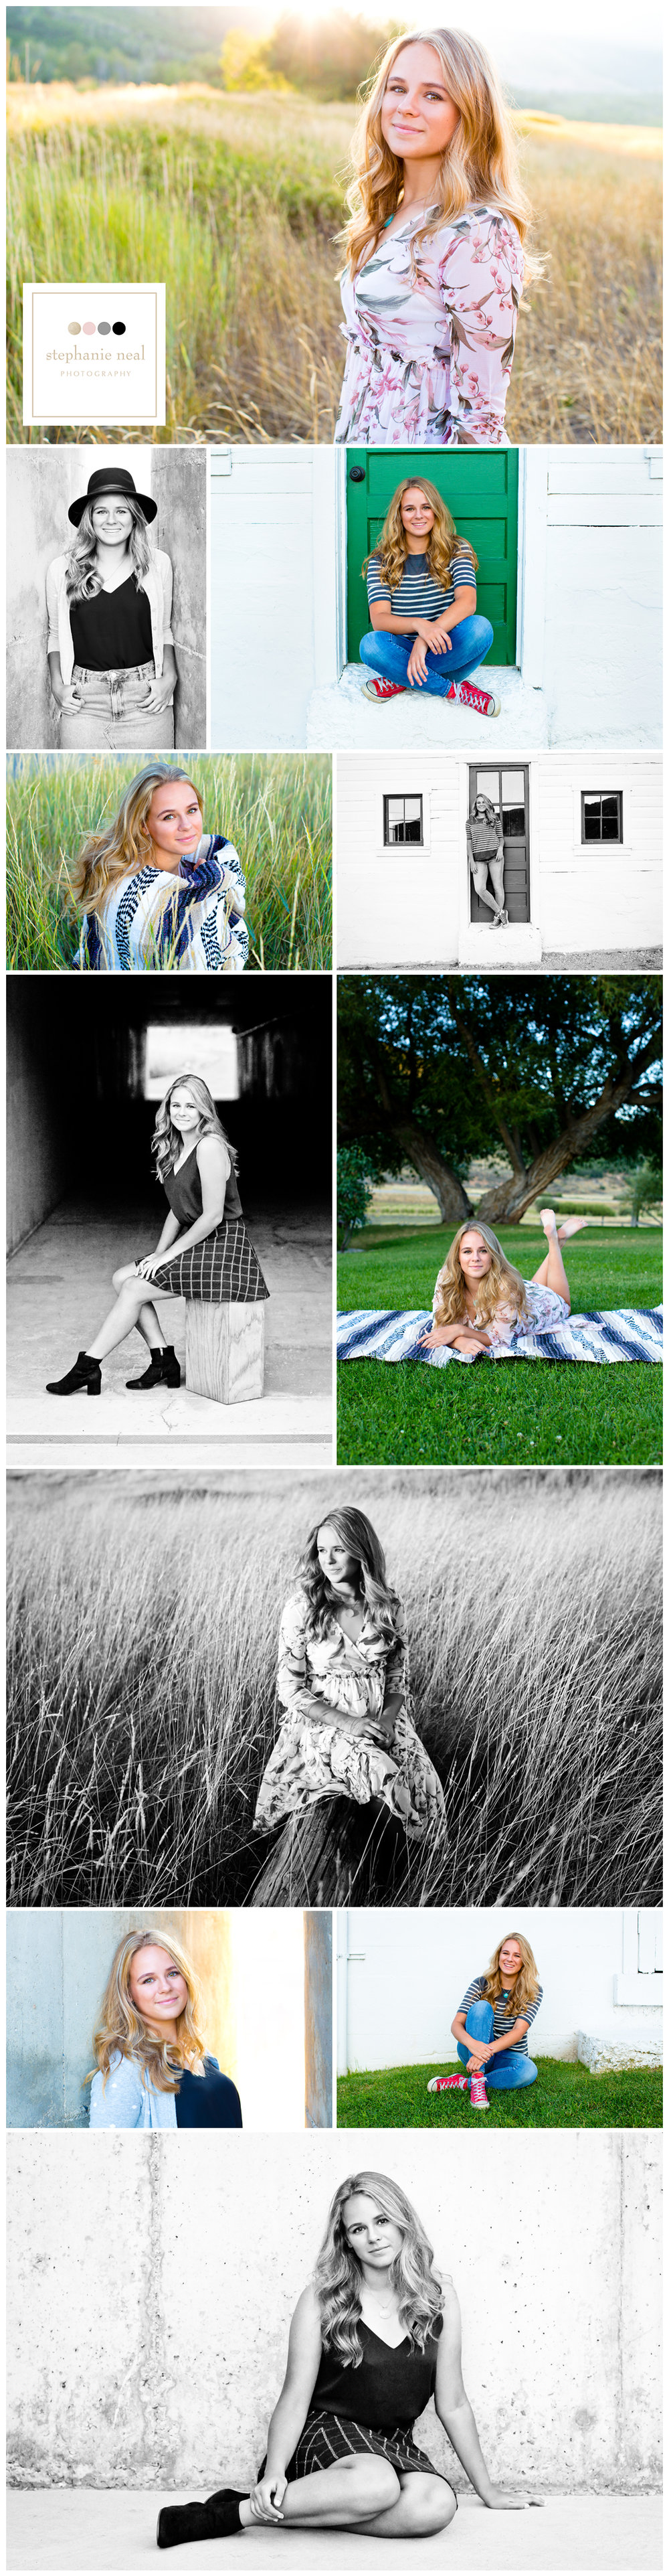 Stephanie Neal Photography- Park City Utah Senior Portrait Photographer.jpg